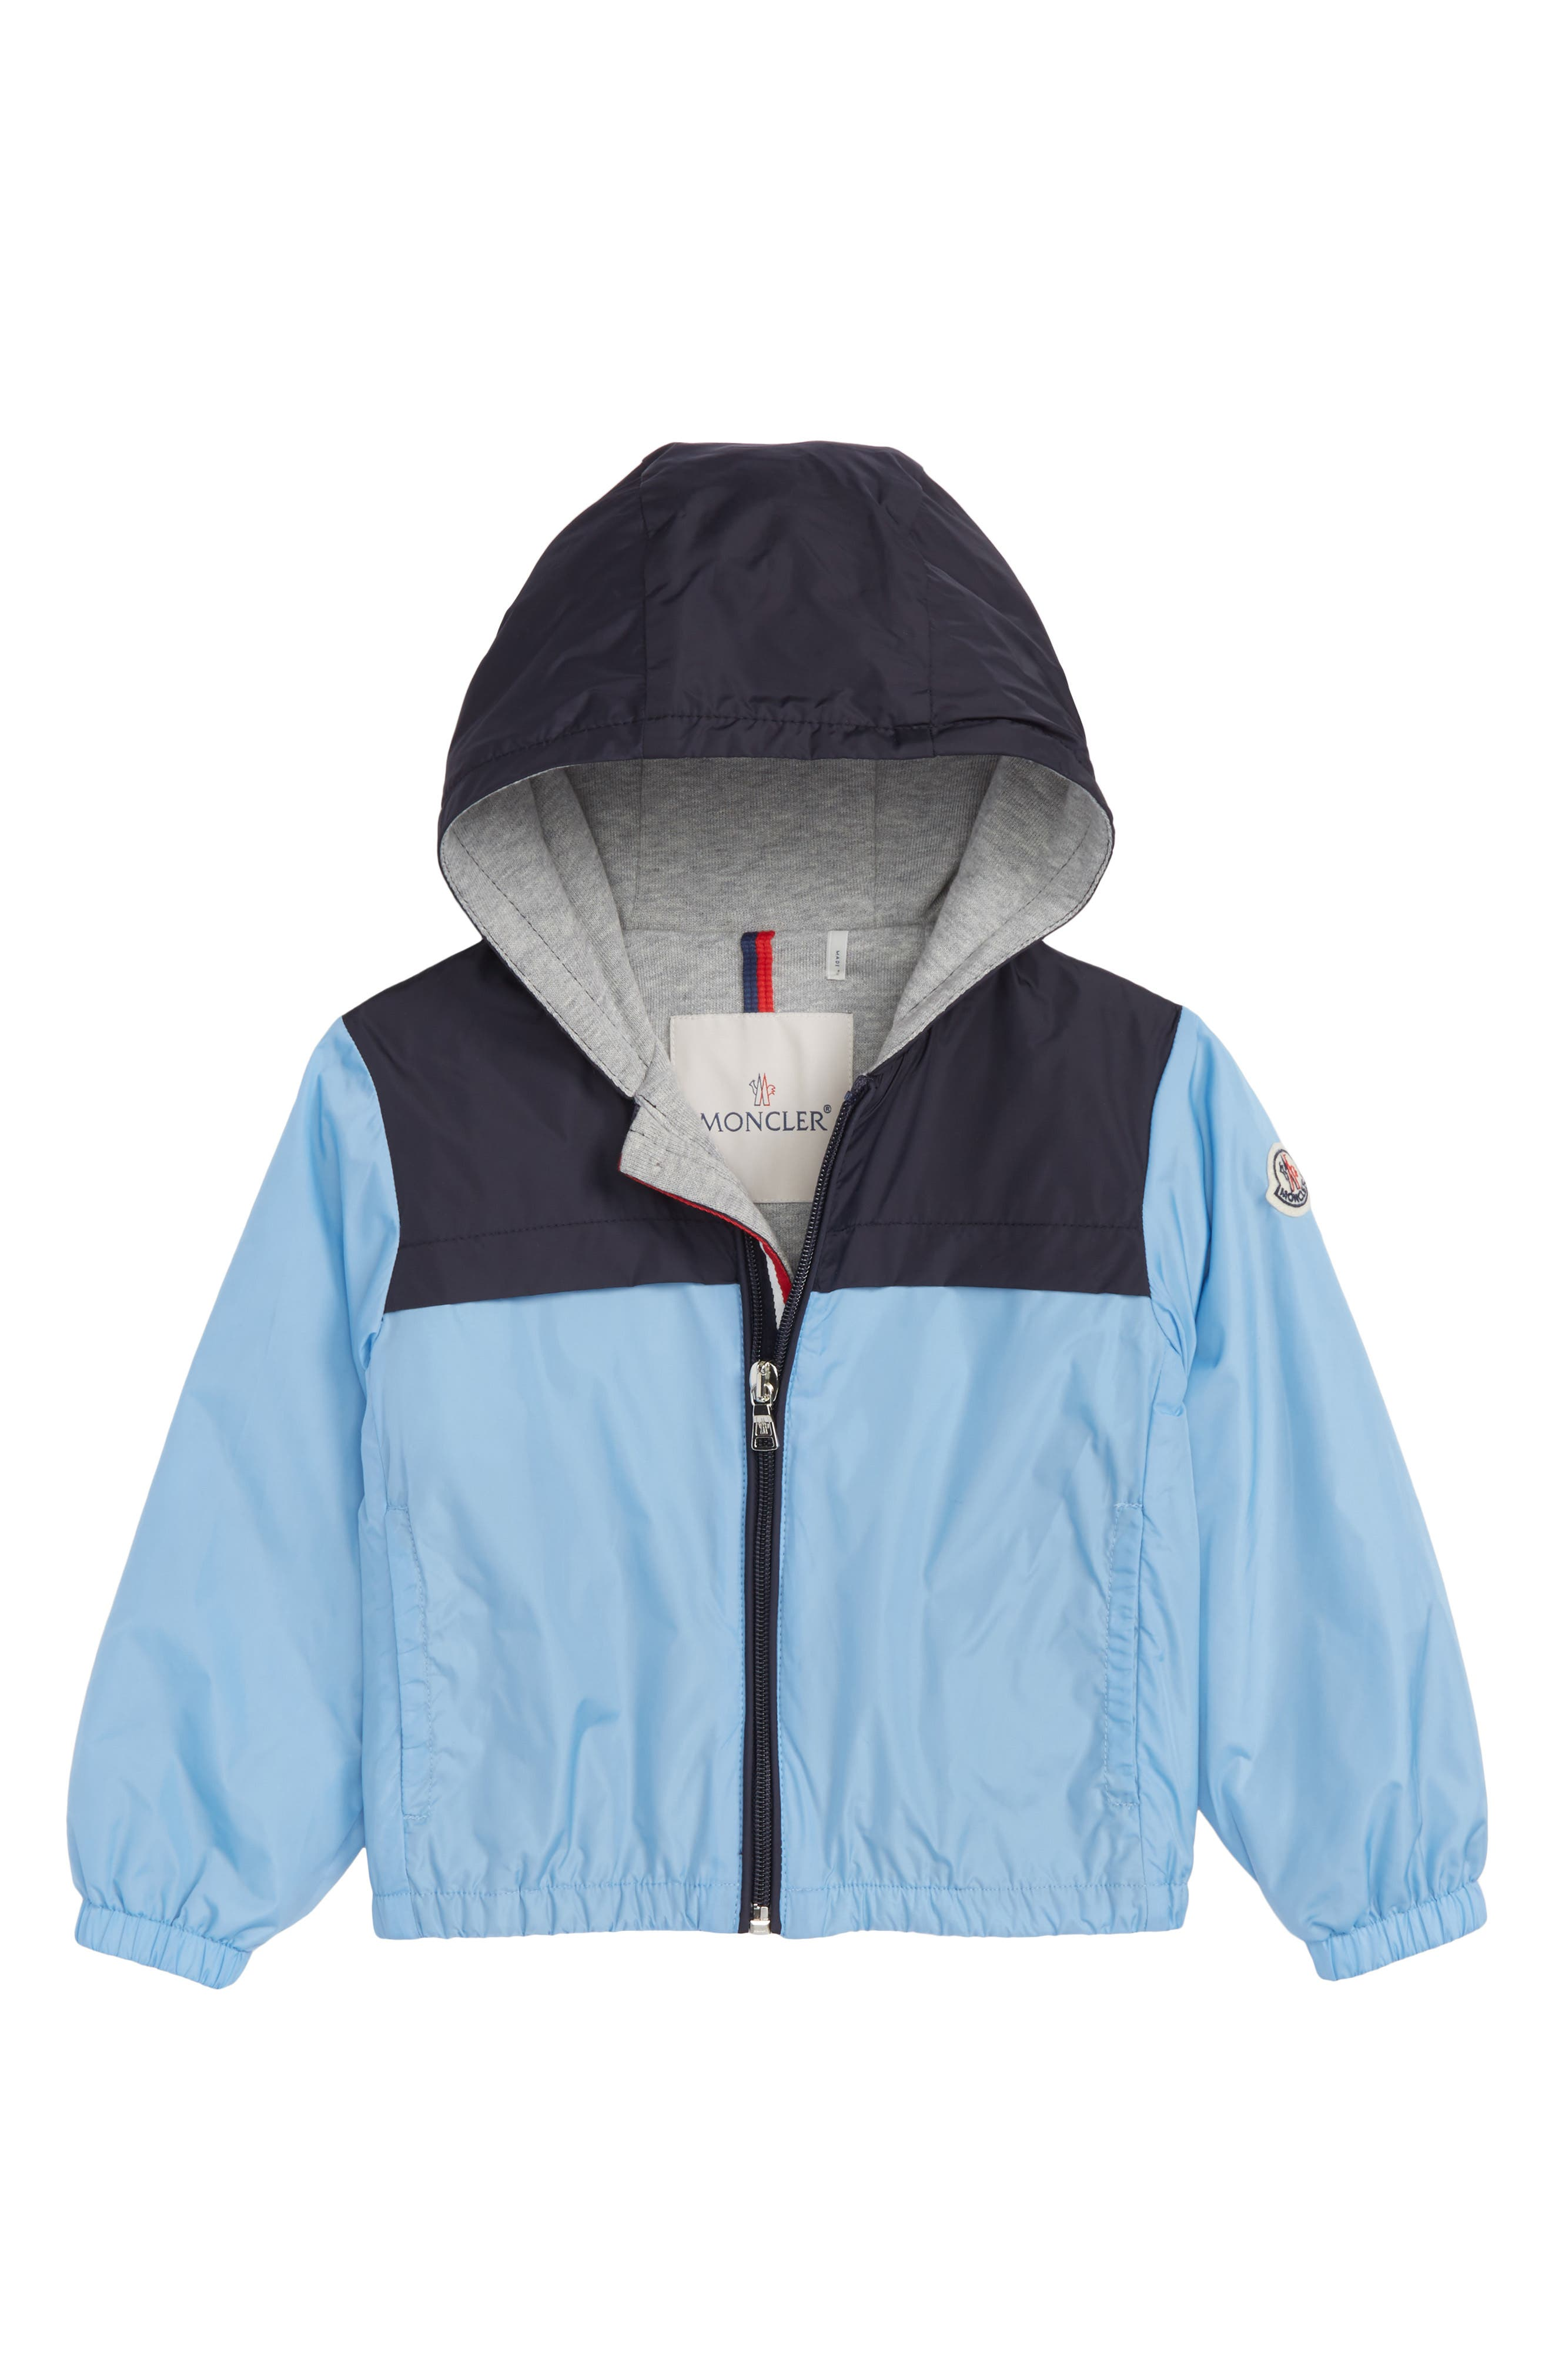 MONCLER Izon Jersey Lined Hoodie, Main, color, BLUE/ NAVY